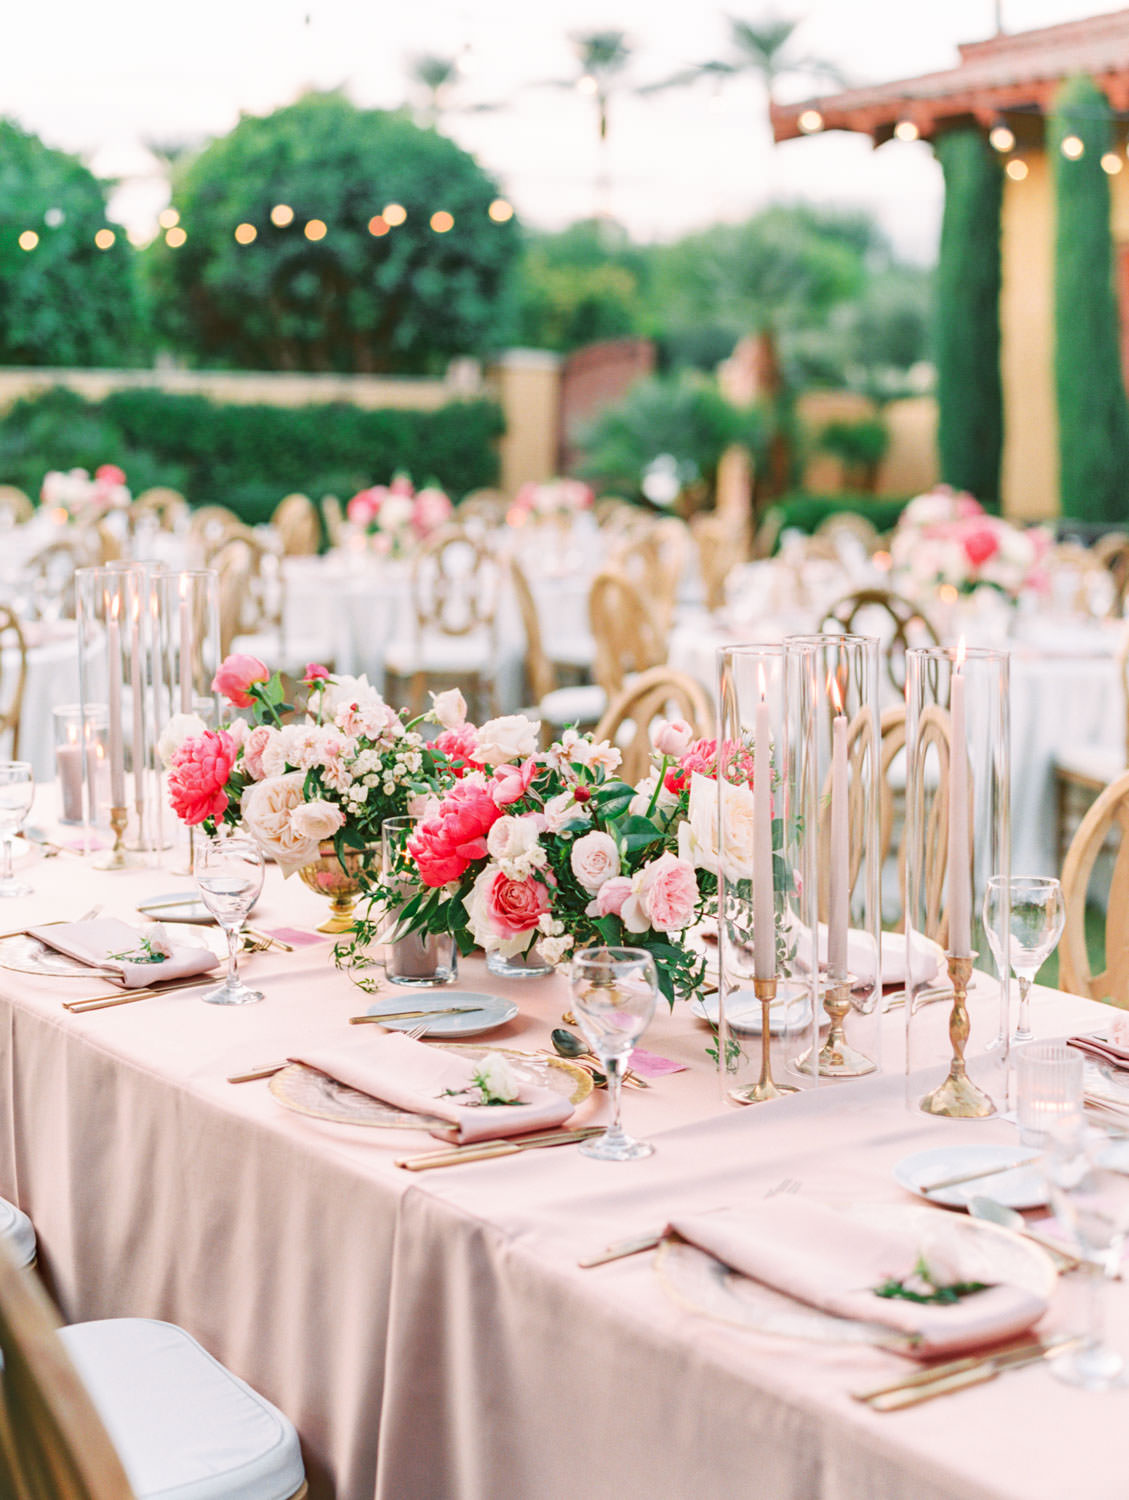 Long table for head table with pink linens and oak Orion chairs. Candles in hurricanes. Pink and ivory bold centerpieces with peonies, sweet peas, ivy, and roses. Miramonte Resort reception on the Mesquite Lawn. Film photography by Cavin Elizabeth.